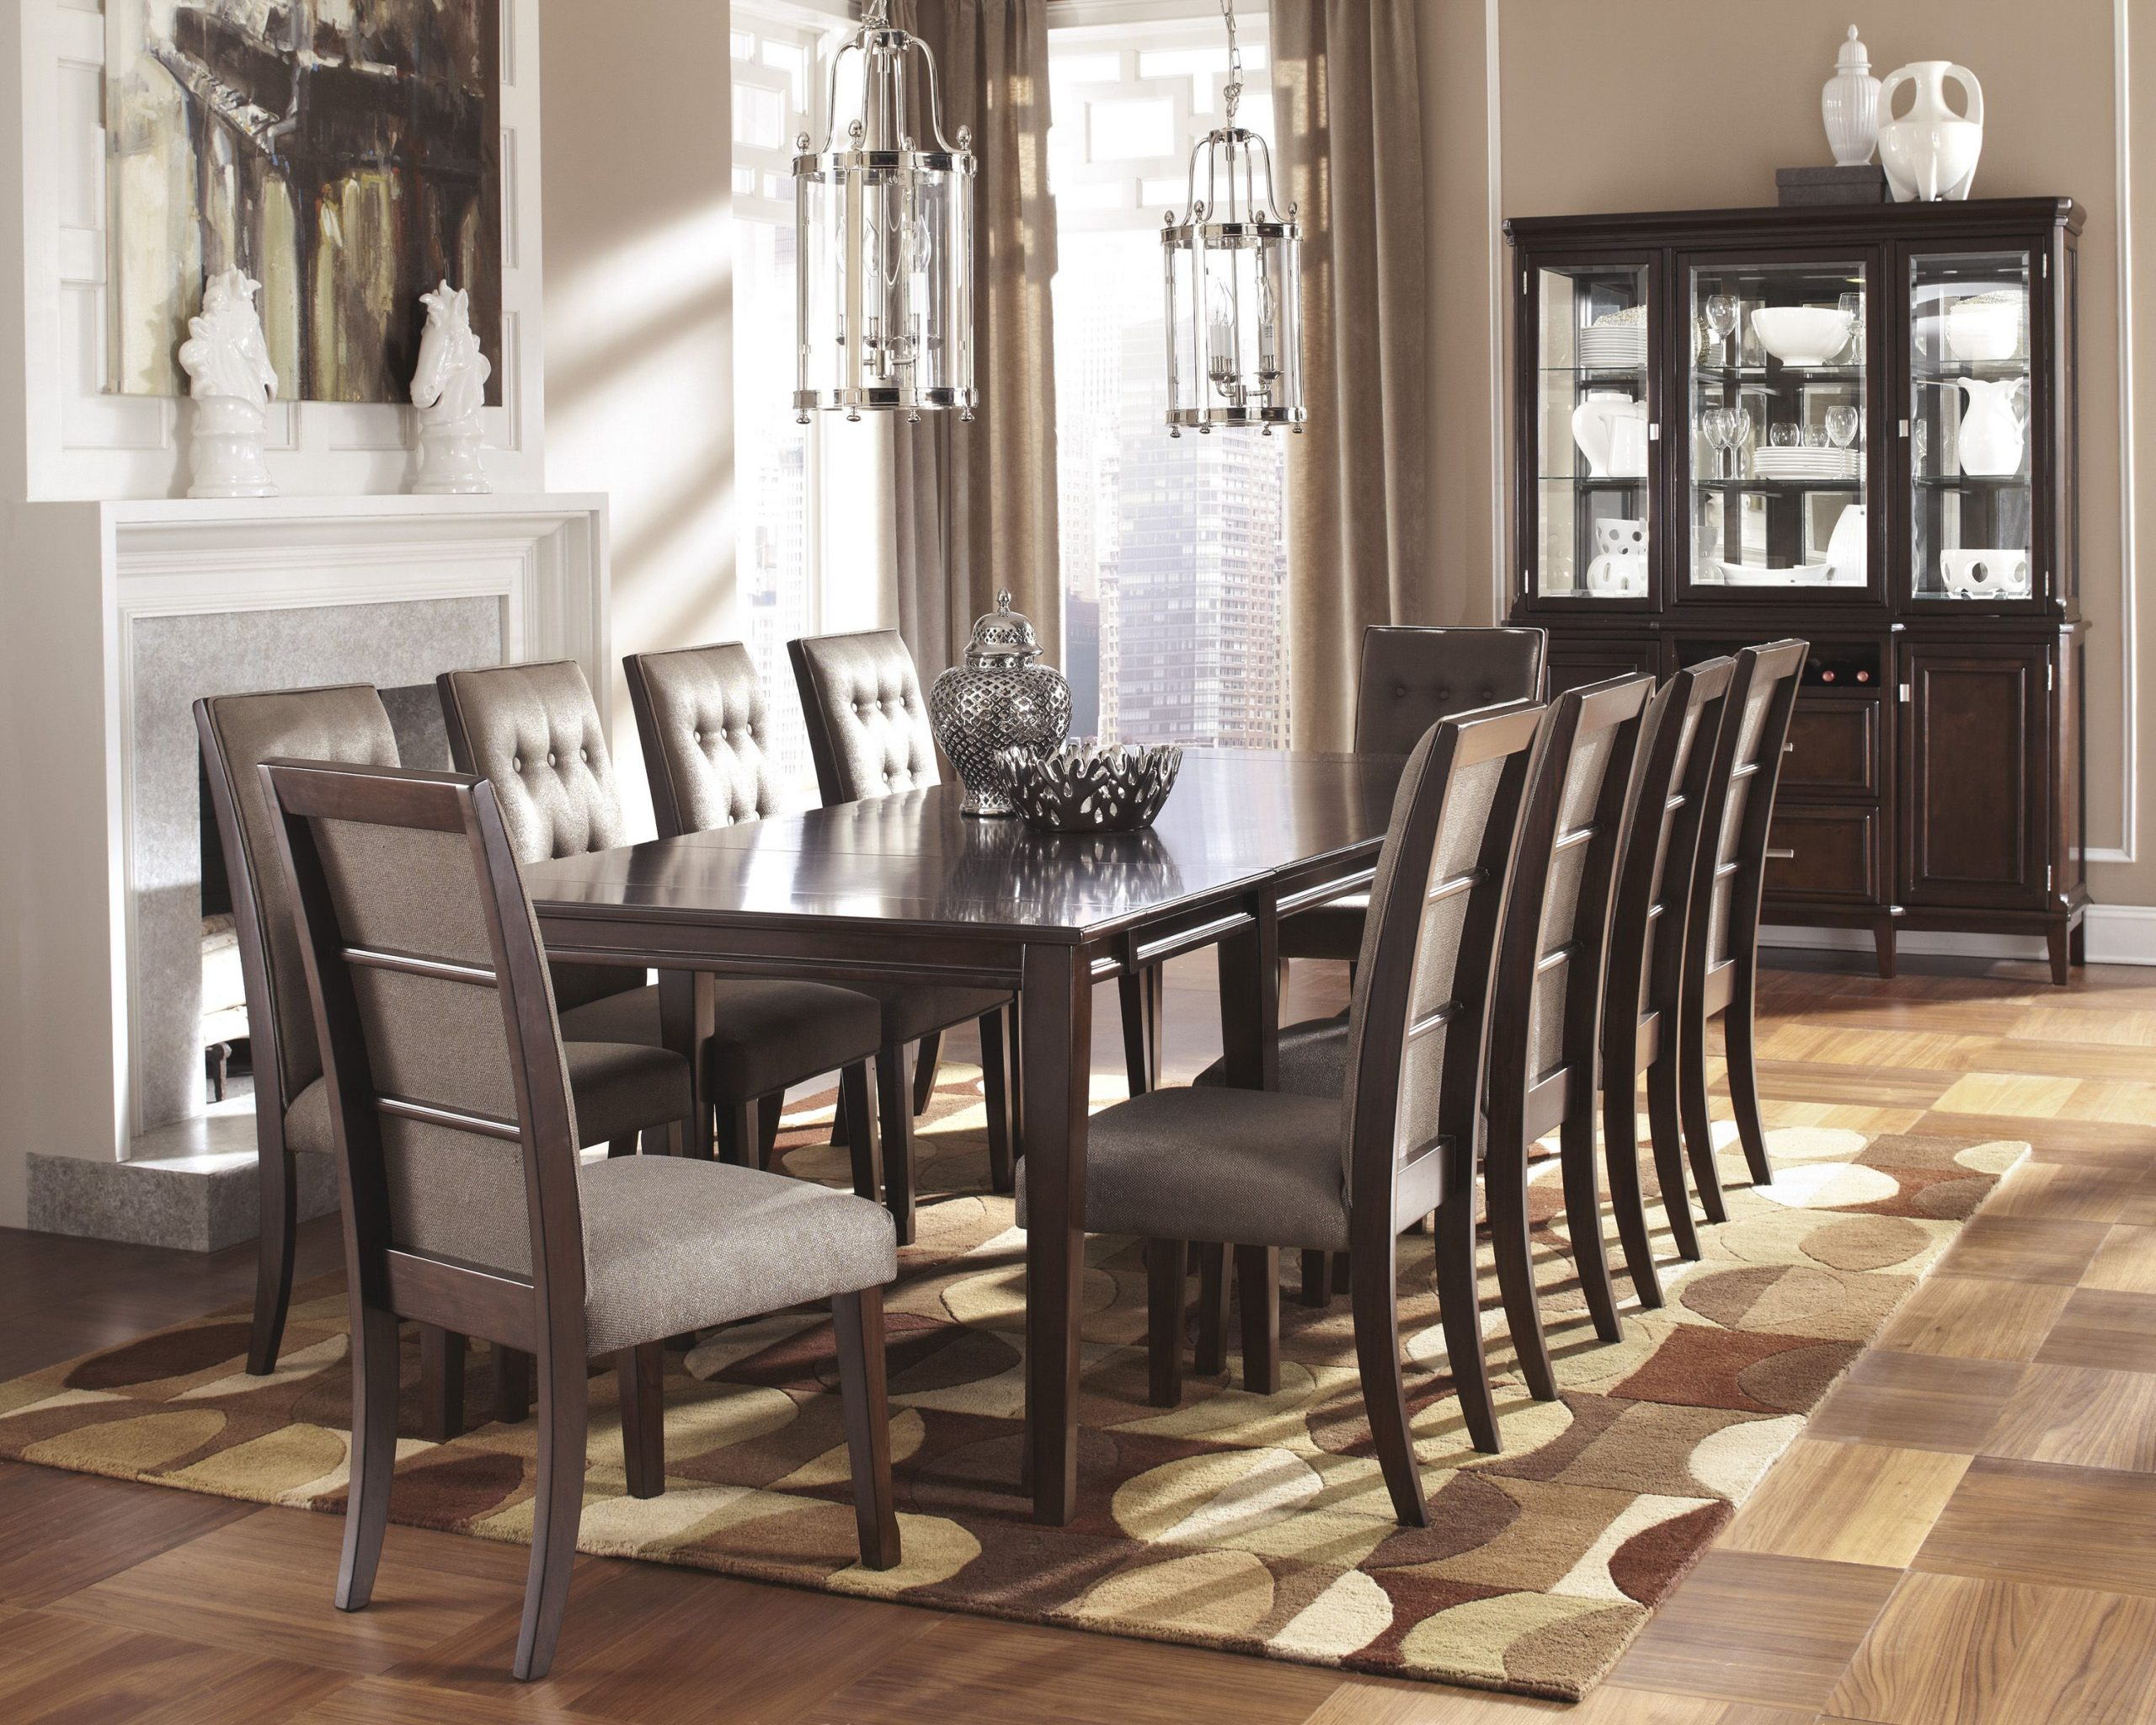 Unique Dining Room From Midas Pin Repin Diningroom throughout dimensions 3000 X 2400